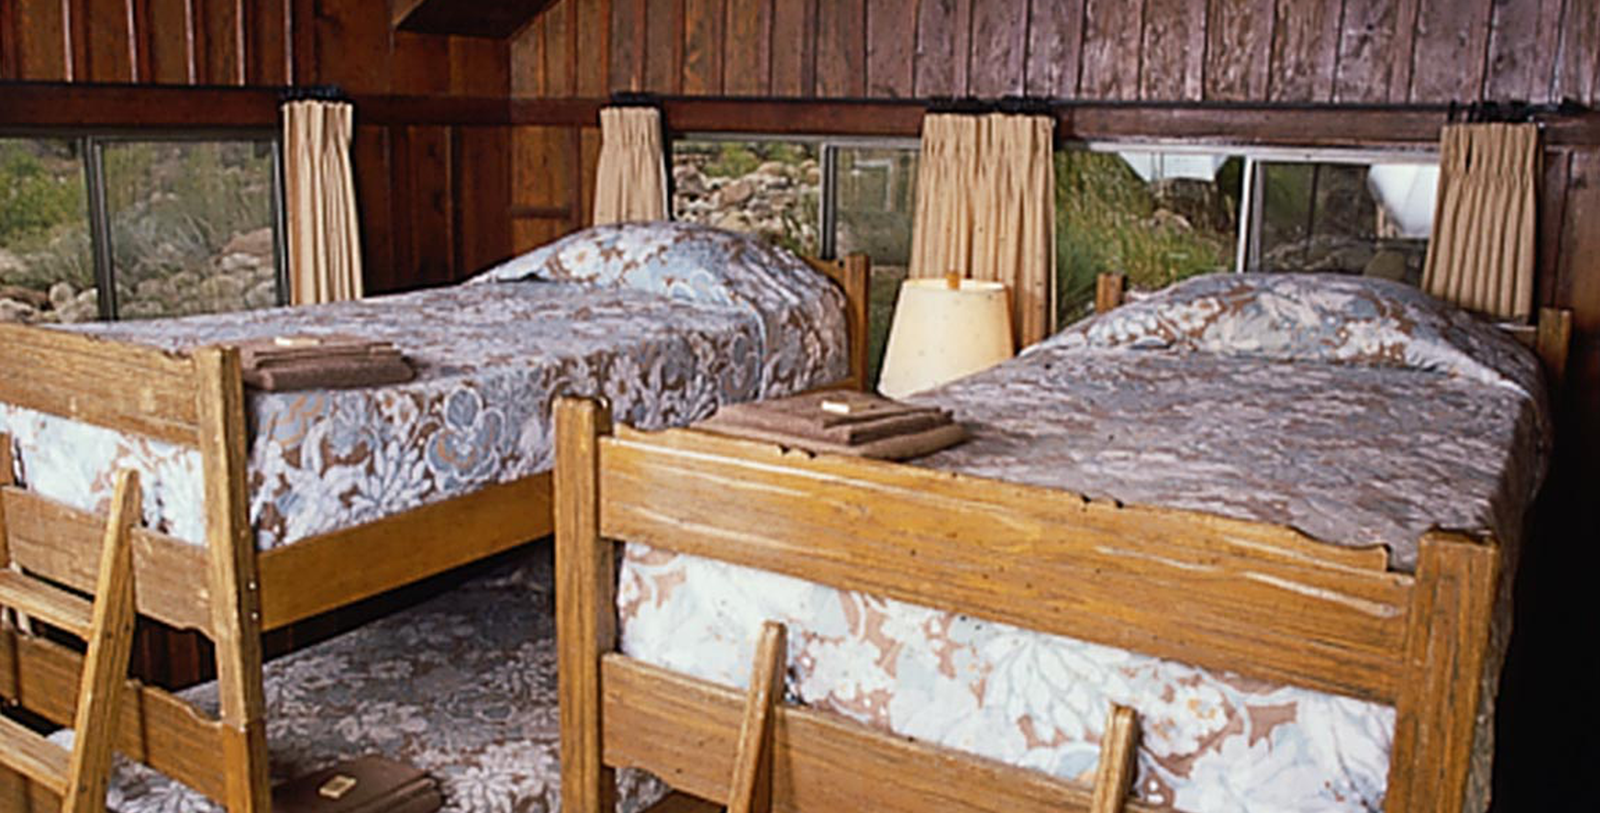 Image of Guestroom at Phantom Ranch, 1922, Member of Historic Hotels of America, in Grand Canyon National Park, Arizona, Location